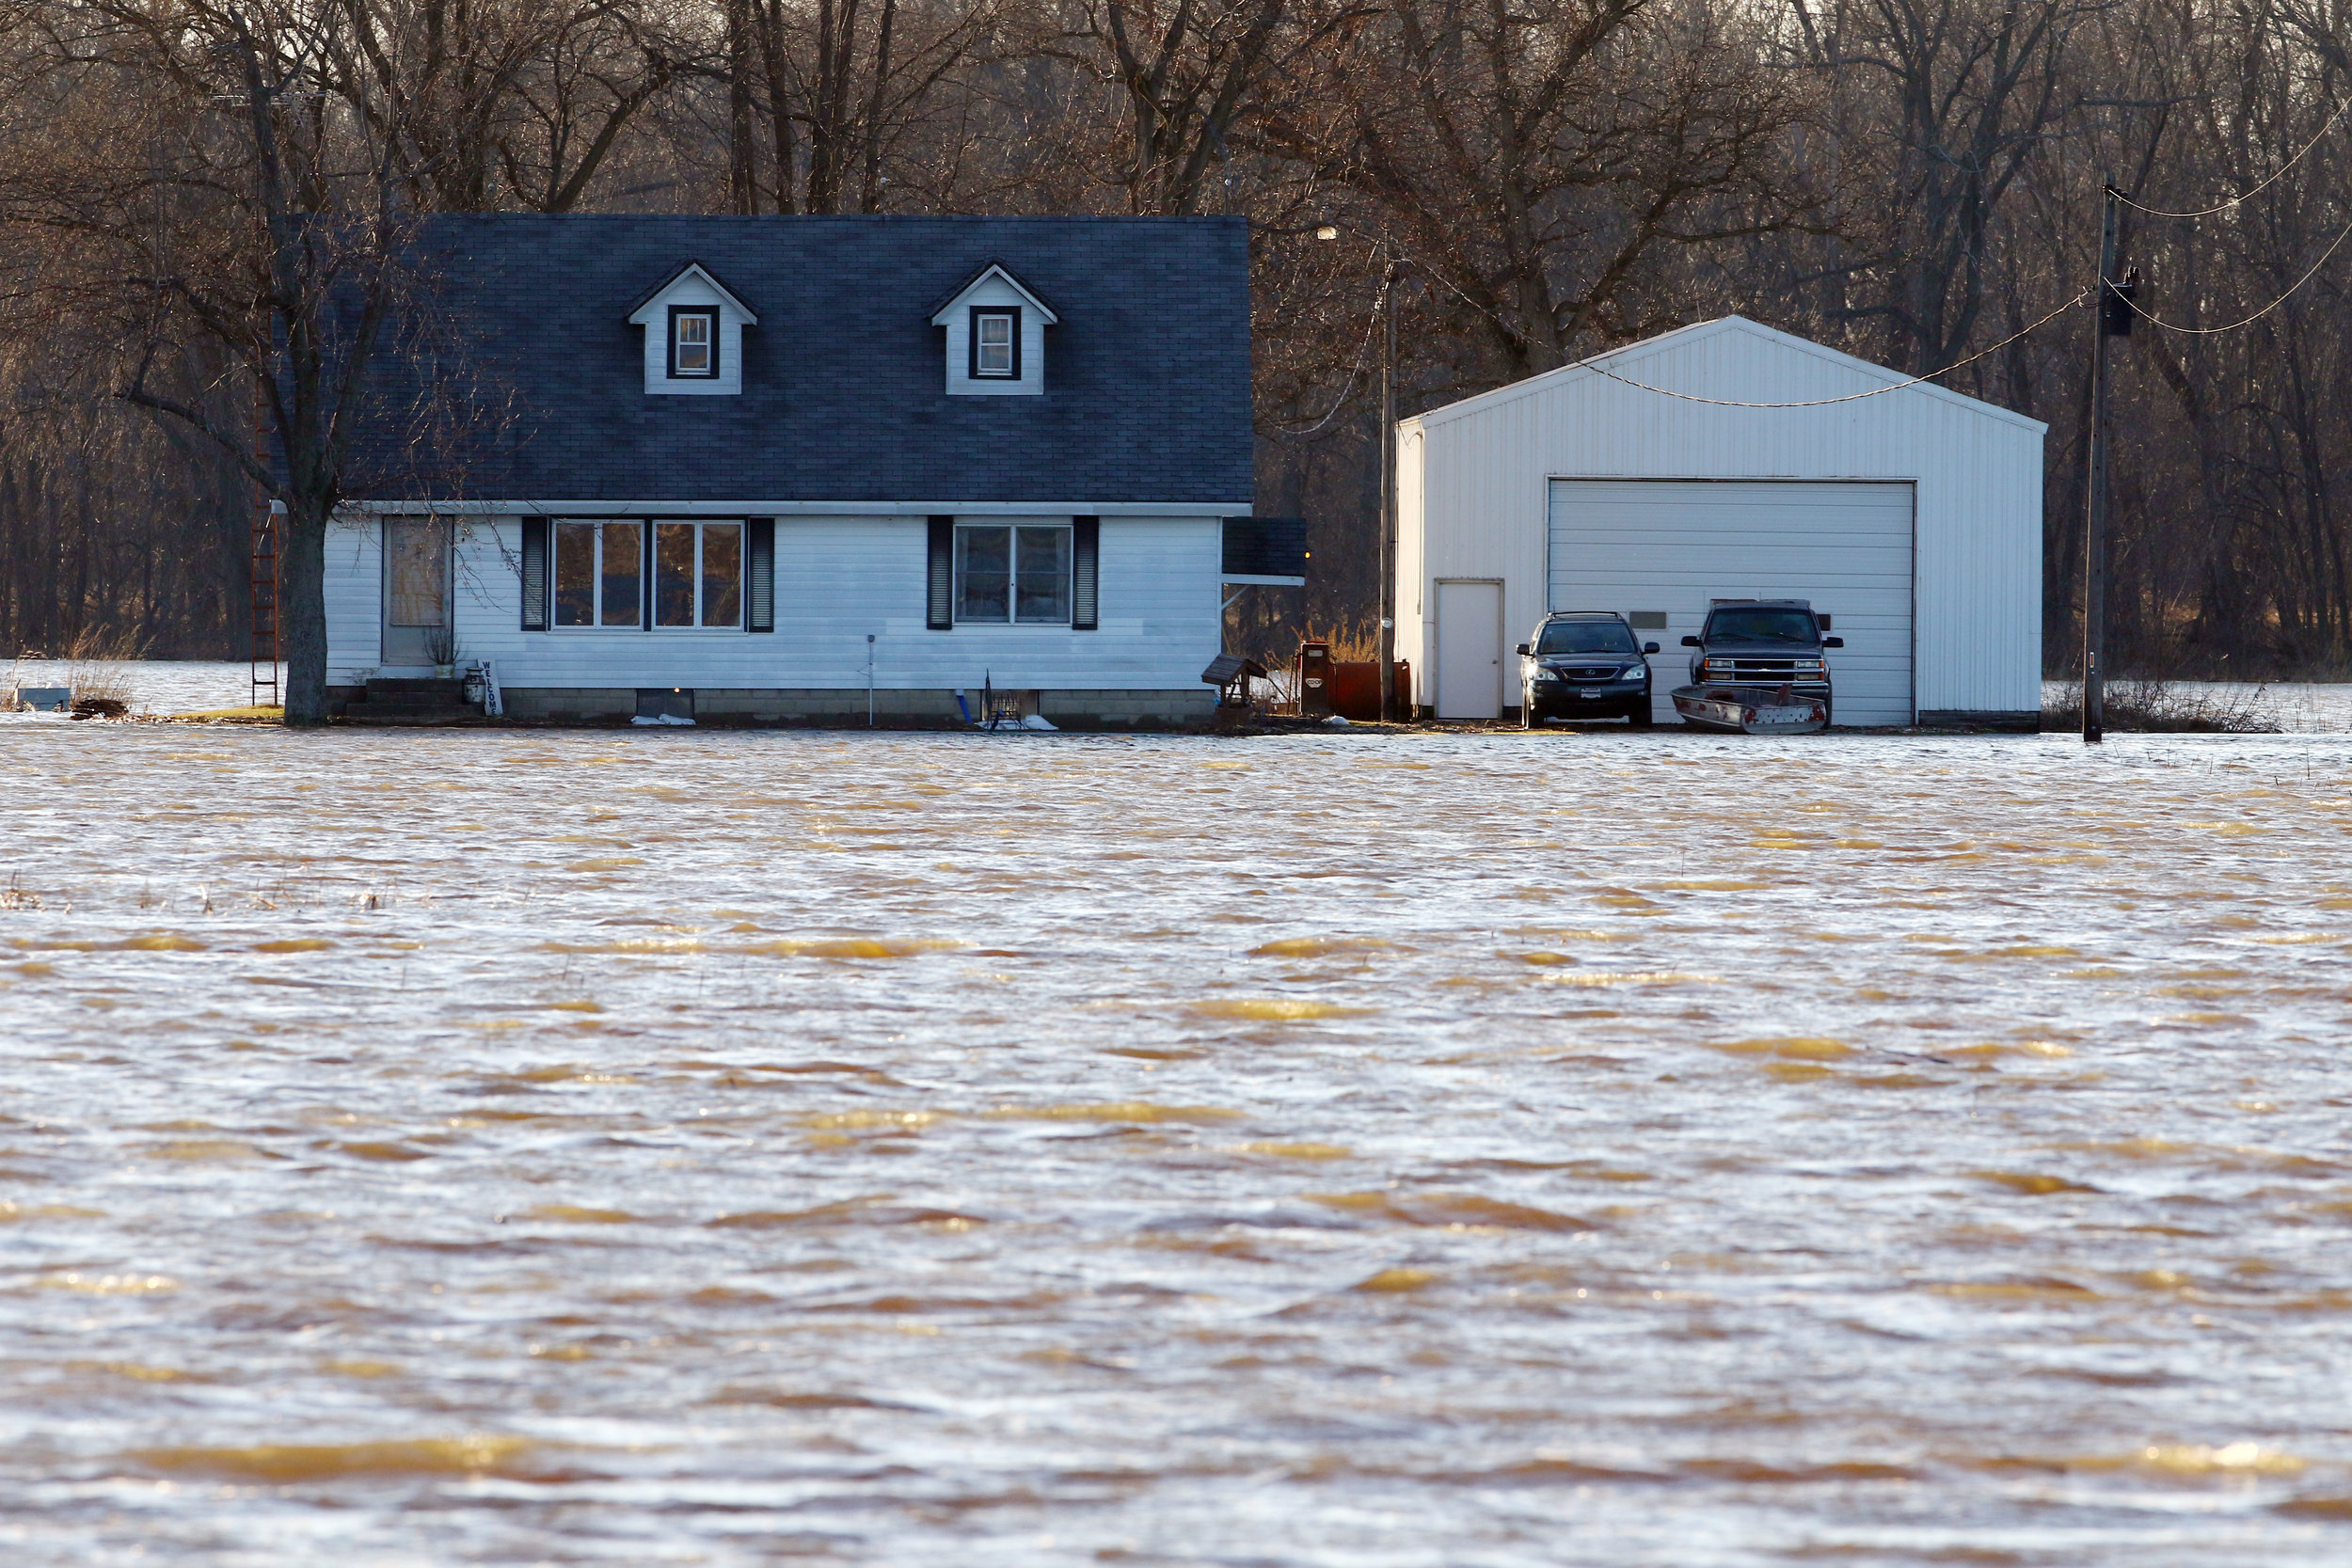 A home is surrounded by water in a flooded field near DeMotte.